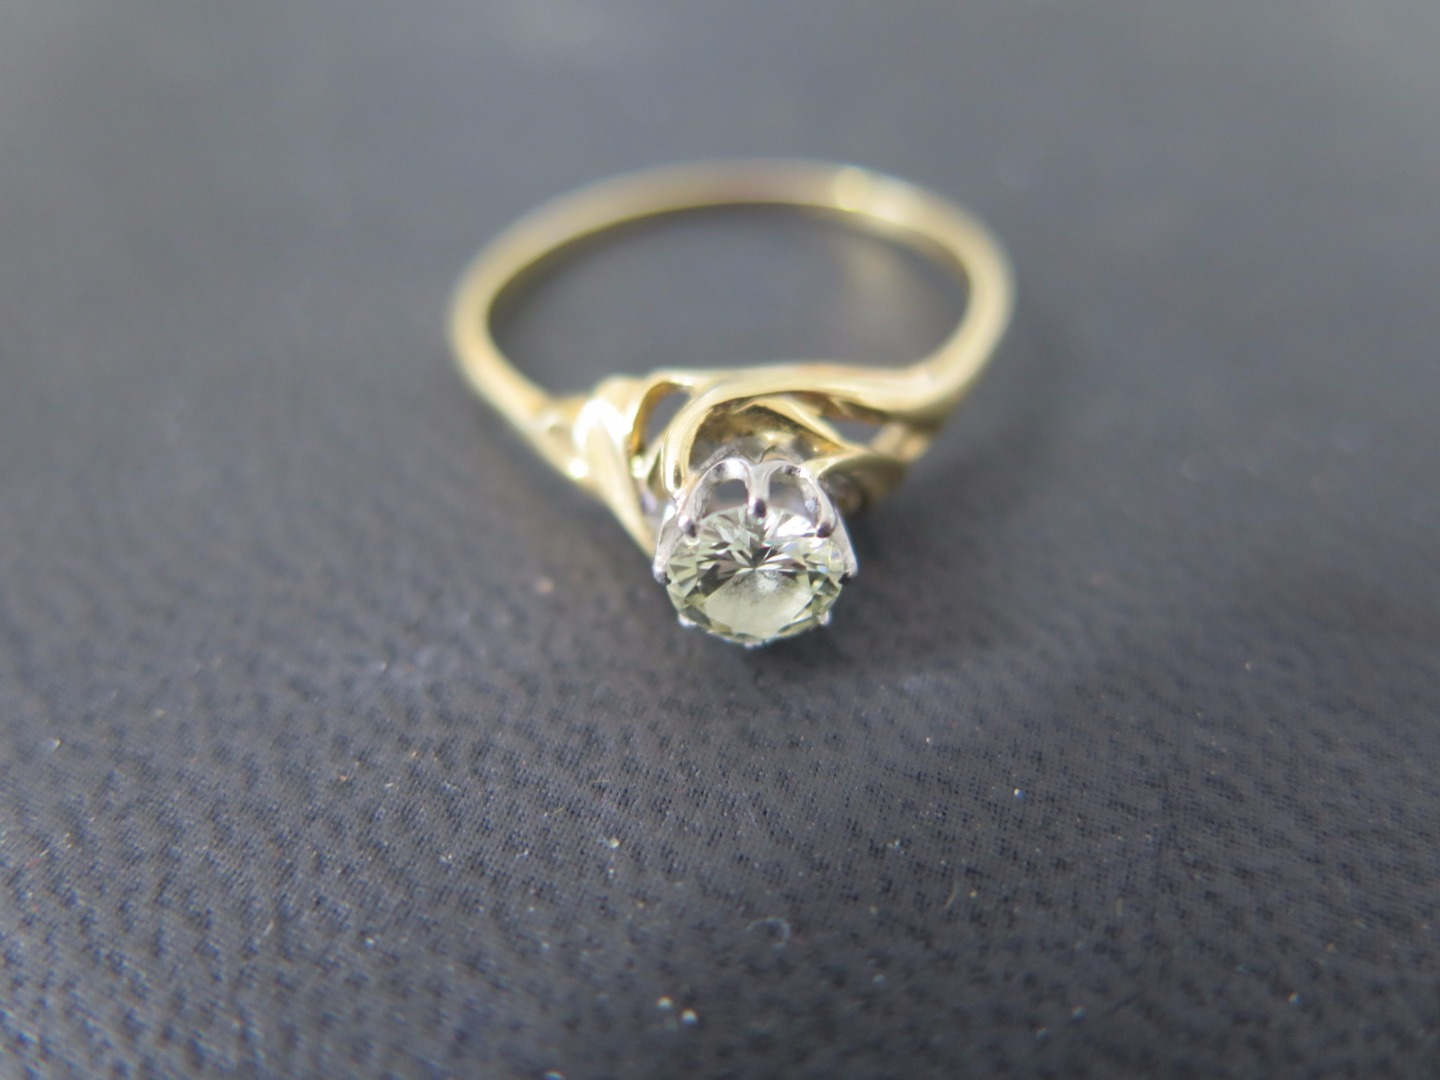 An 18ct gold solitaire diamond ring size T - approx weight 2.5 grams...